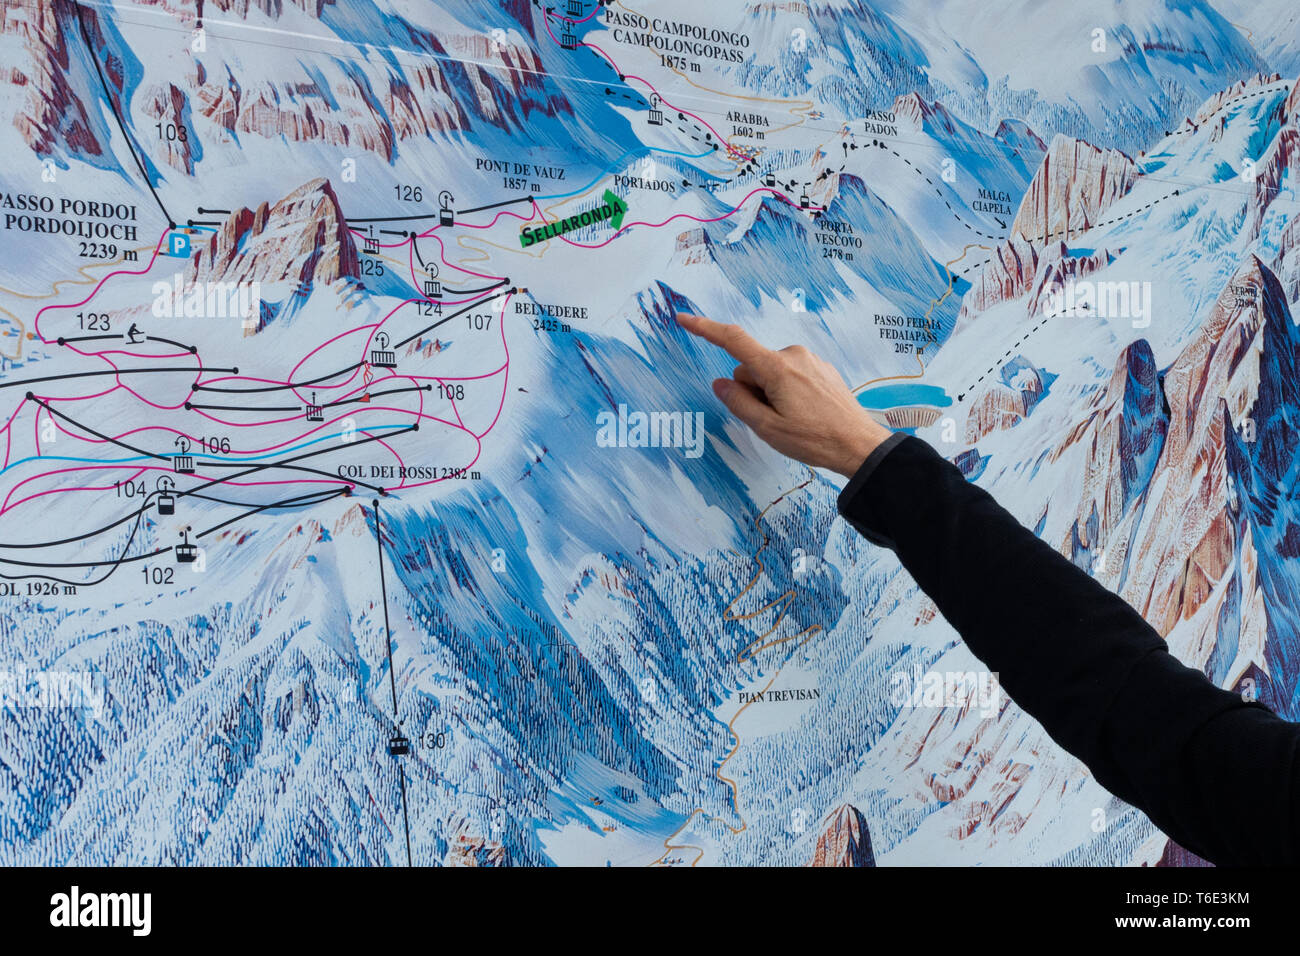 A hand is pointing to  a ski route on a street piste map in the dolomites ski area - Stock Image